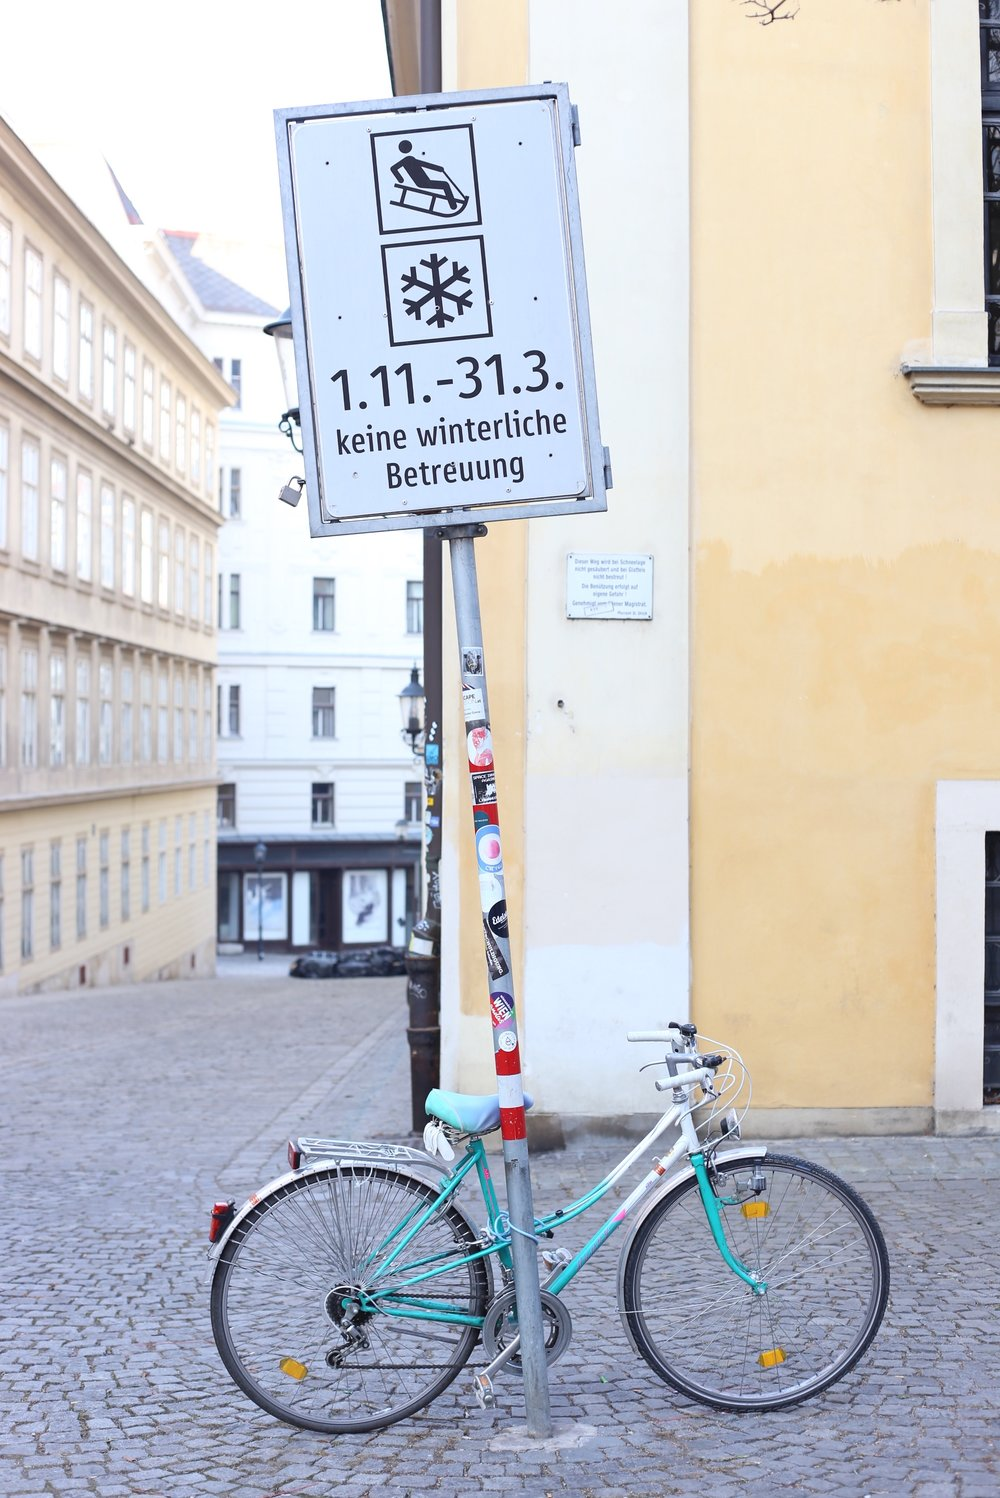 Bike and a sign for sledding in the streets of Vienna.